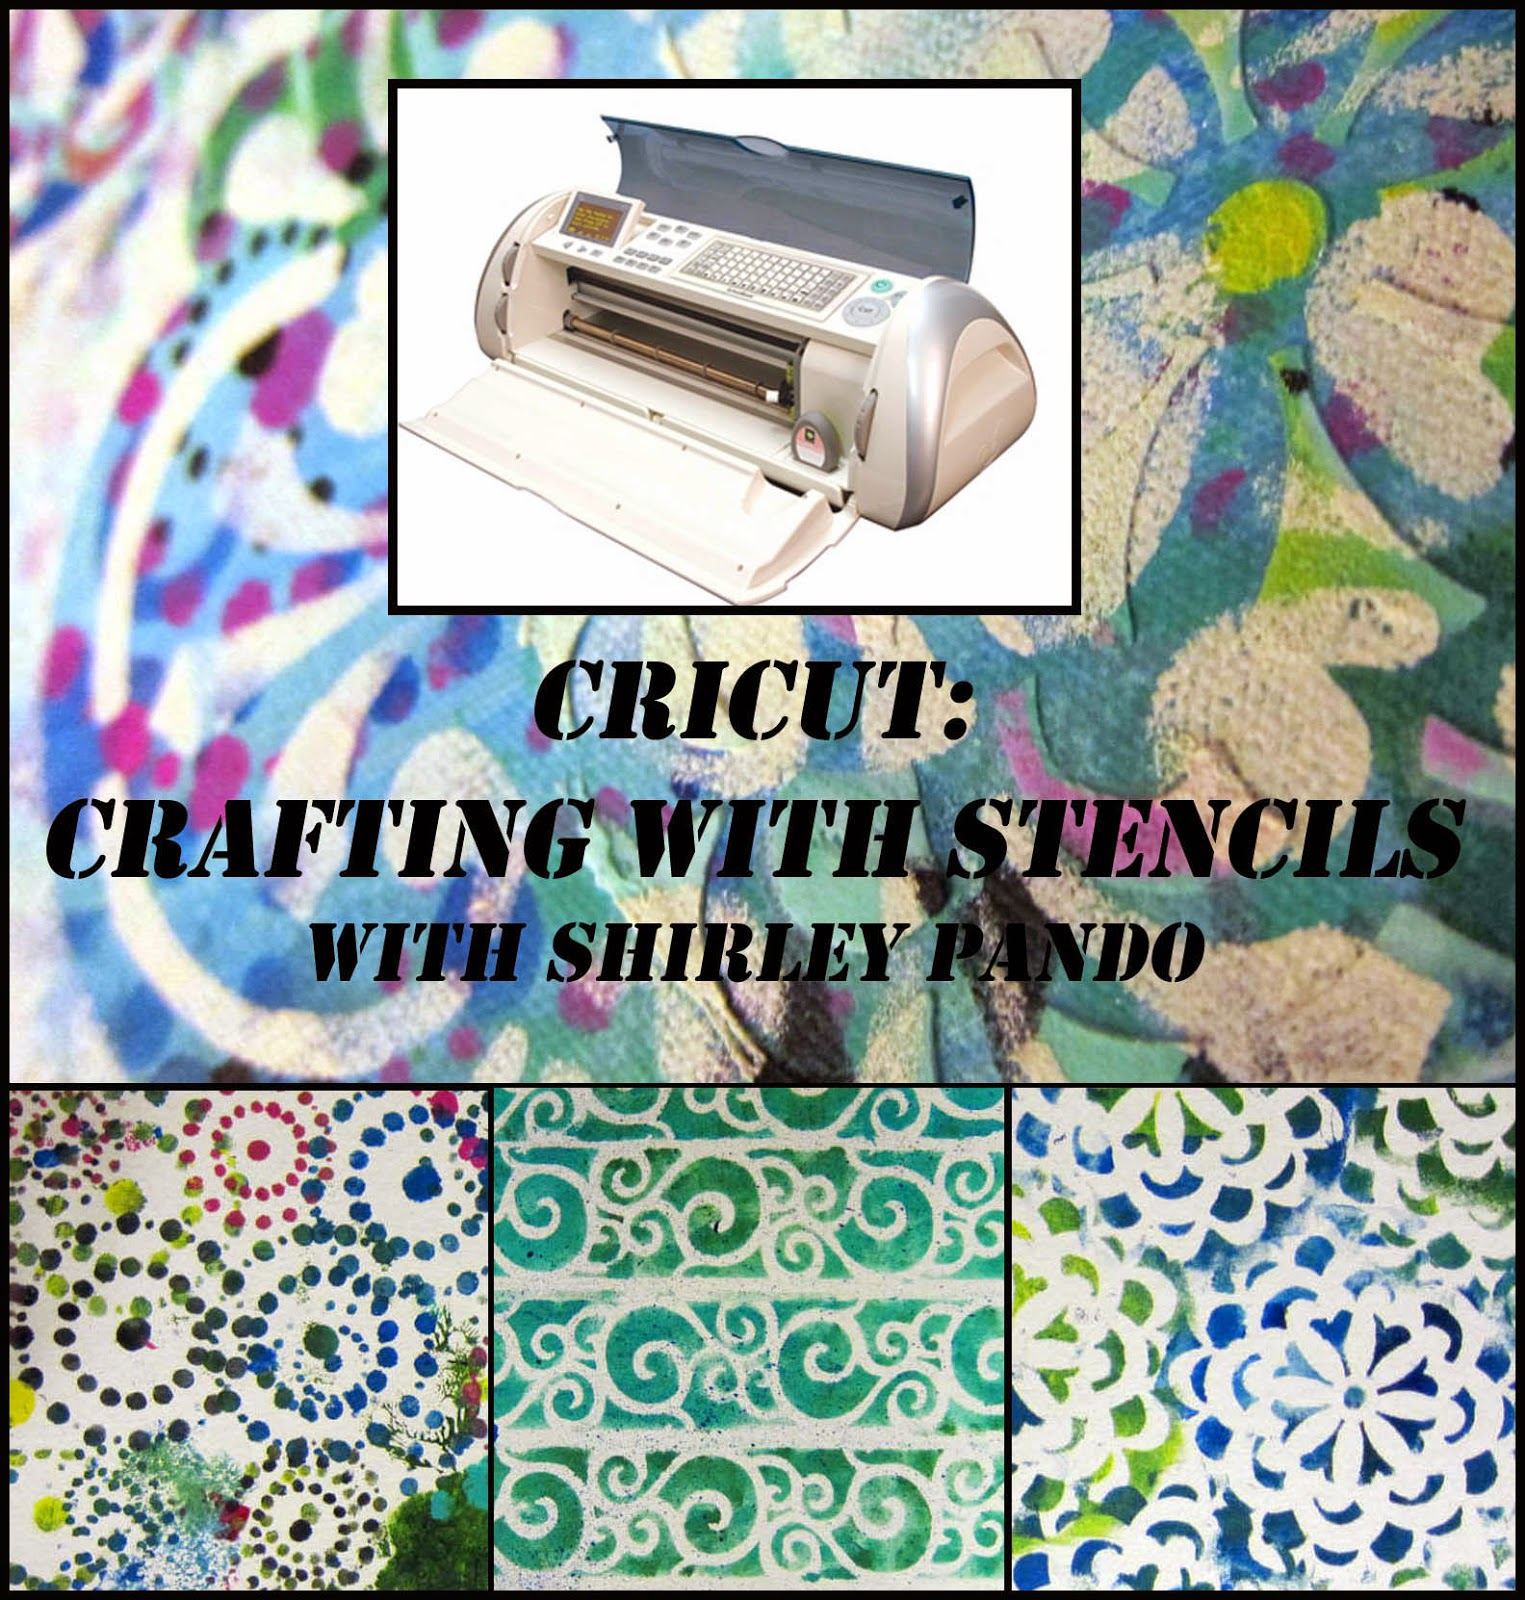 http://www.craftclassesonline.com/cricut--crafting-with-stencils.html